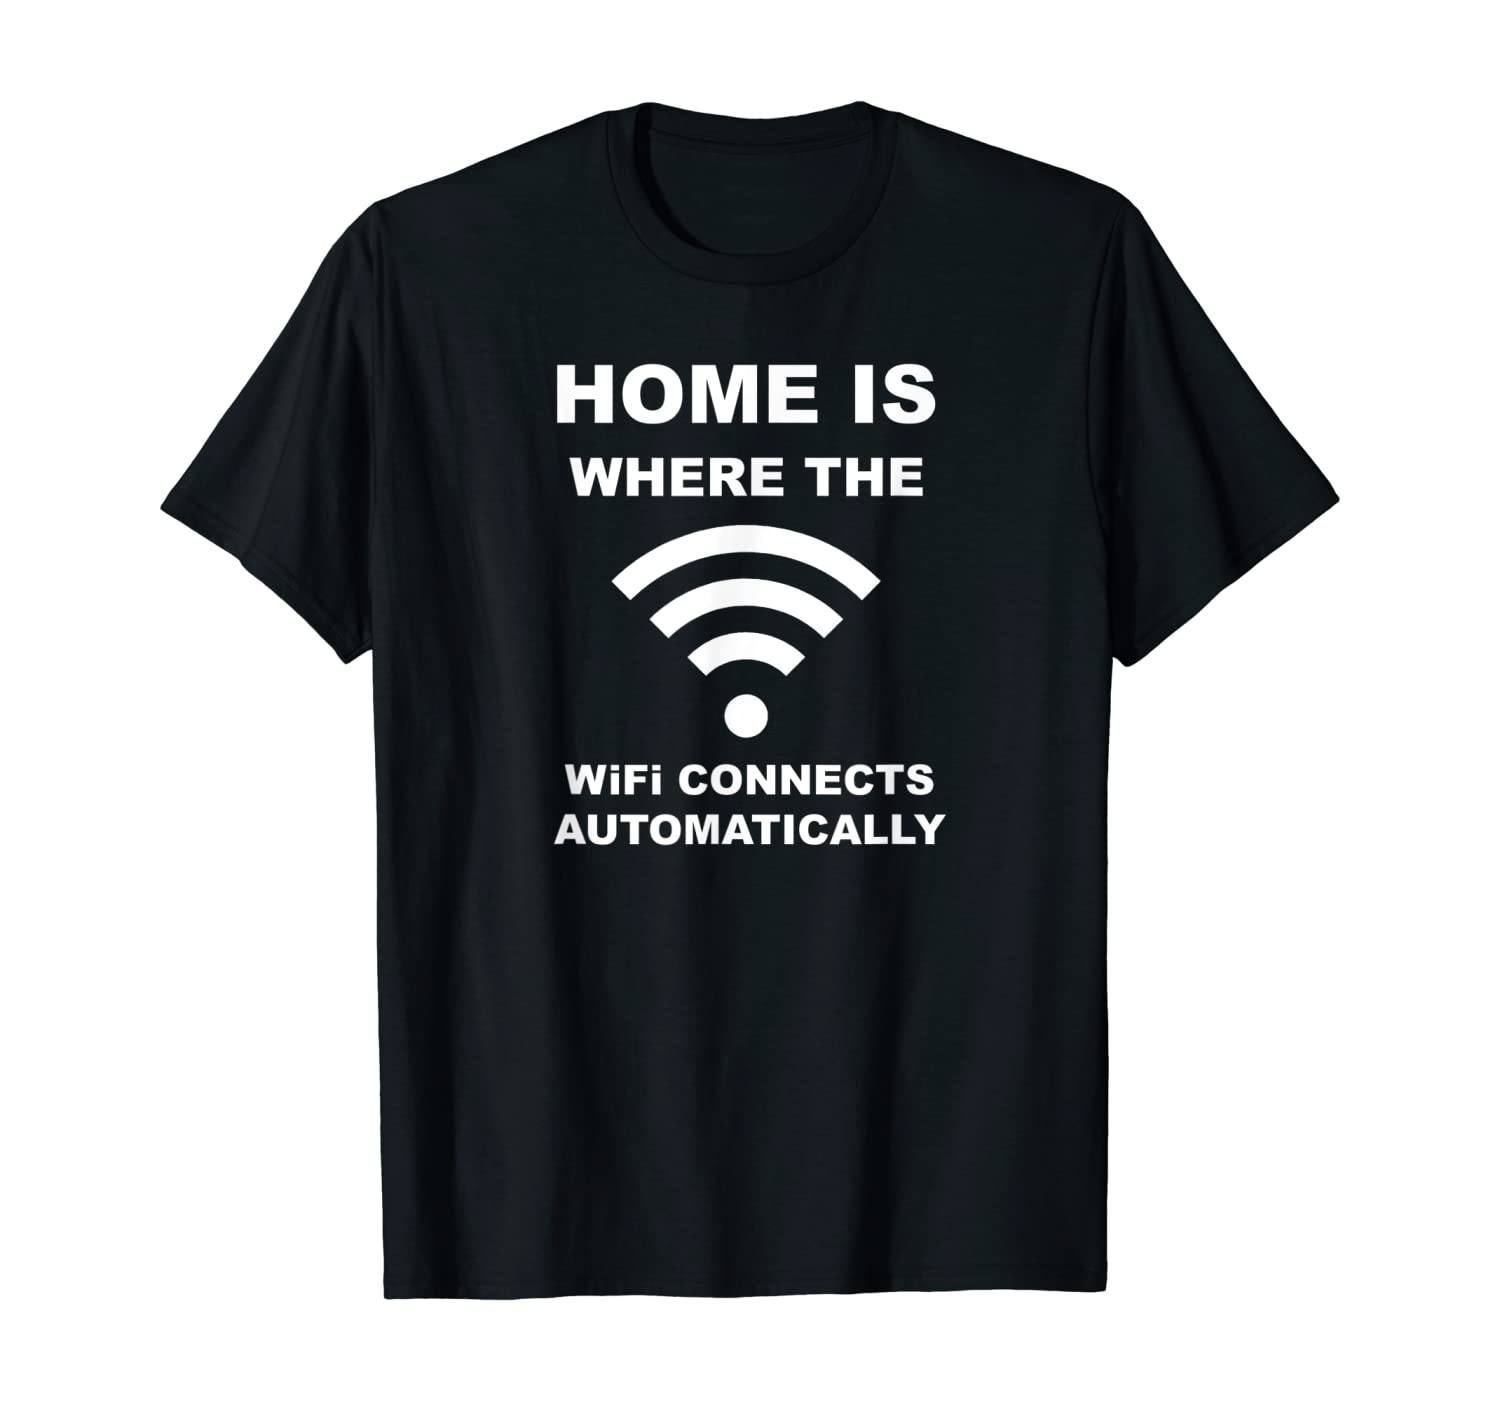 Home is Where the Wifi Connects Automatically Fun Teen Tee!